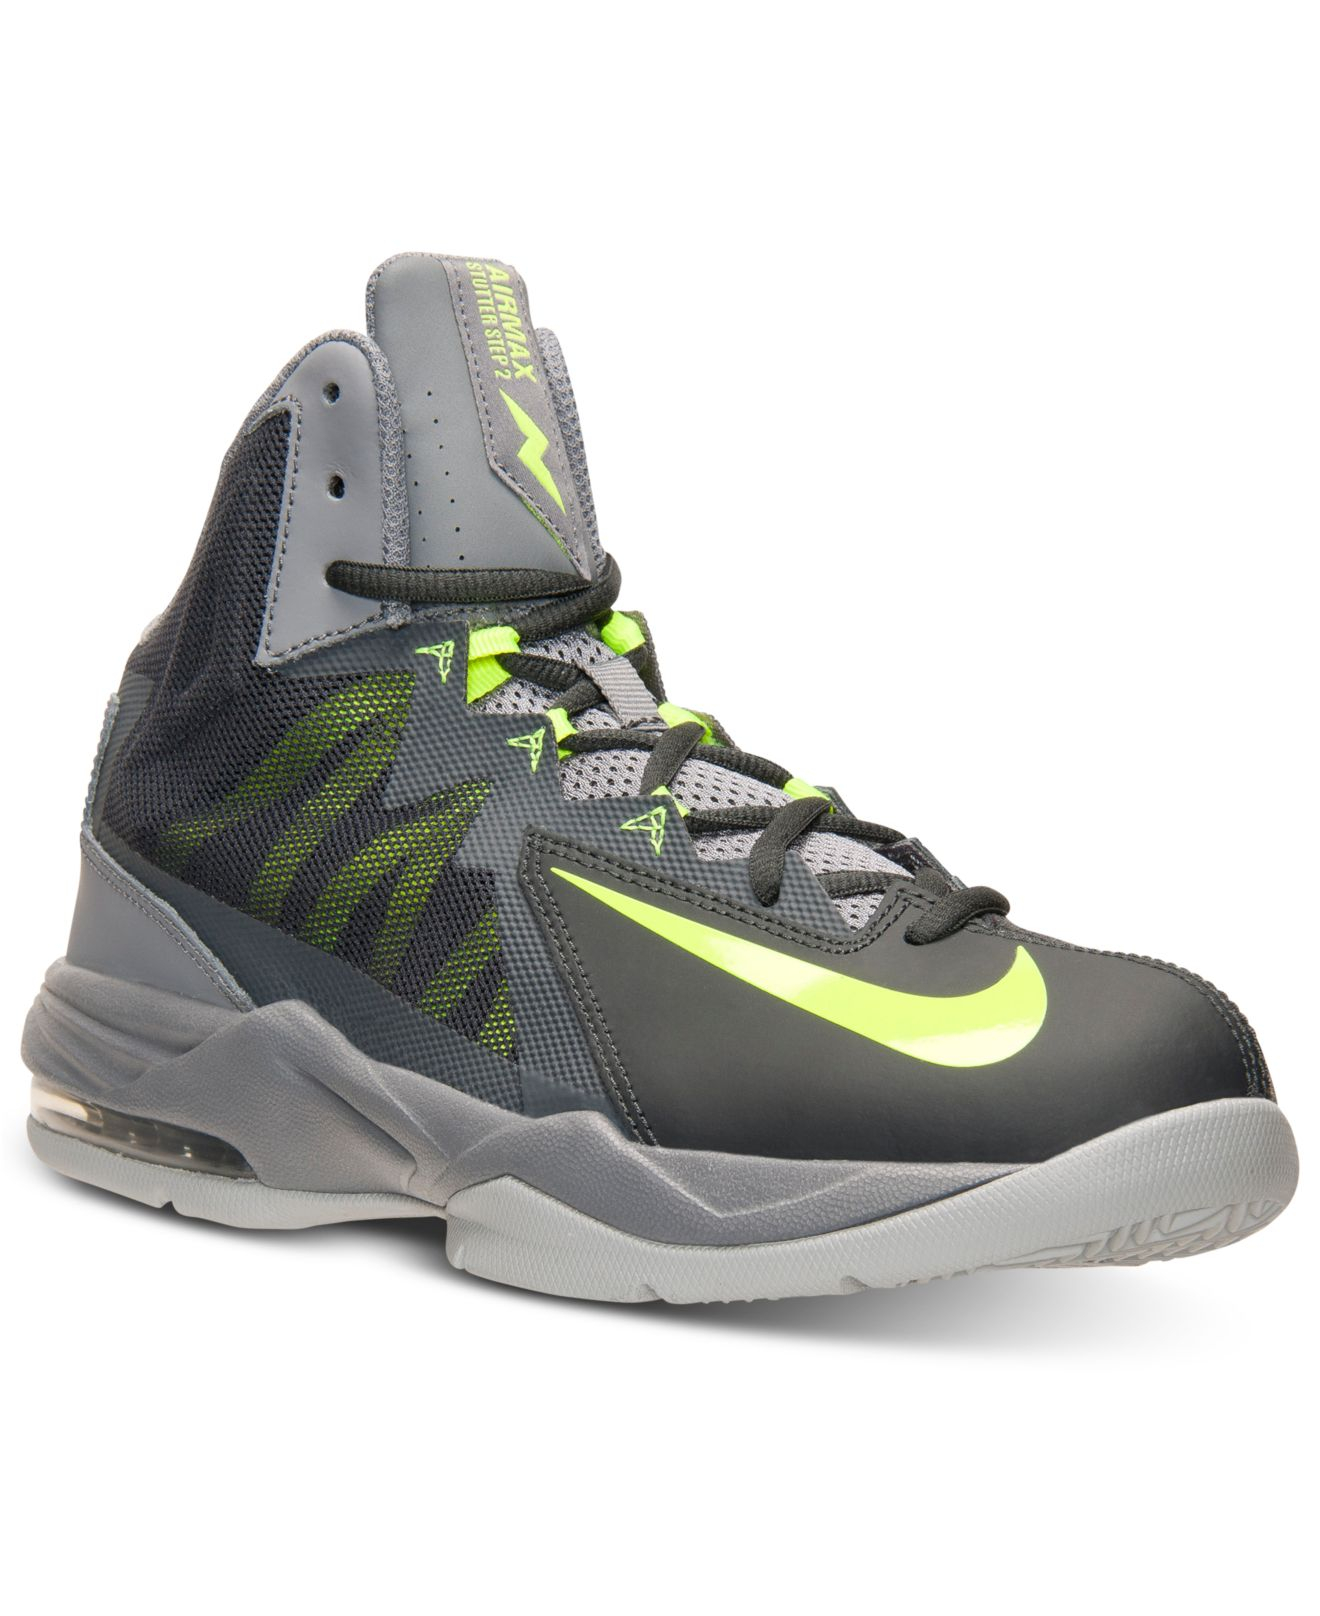 0f90bc2f1561 ... authentic lyst nike mens air max stutter step 2 basketball sneakers  from ada5a 05daa ...